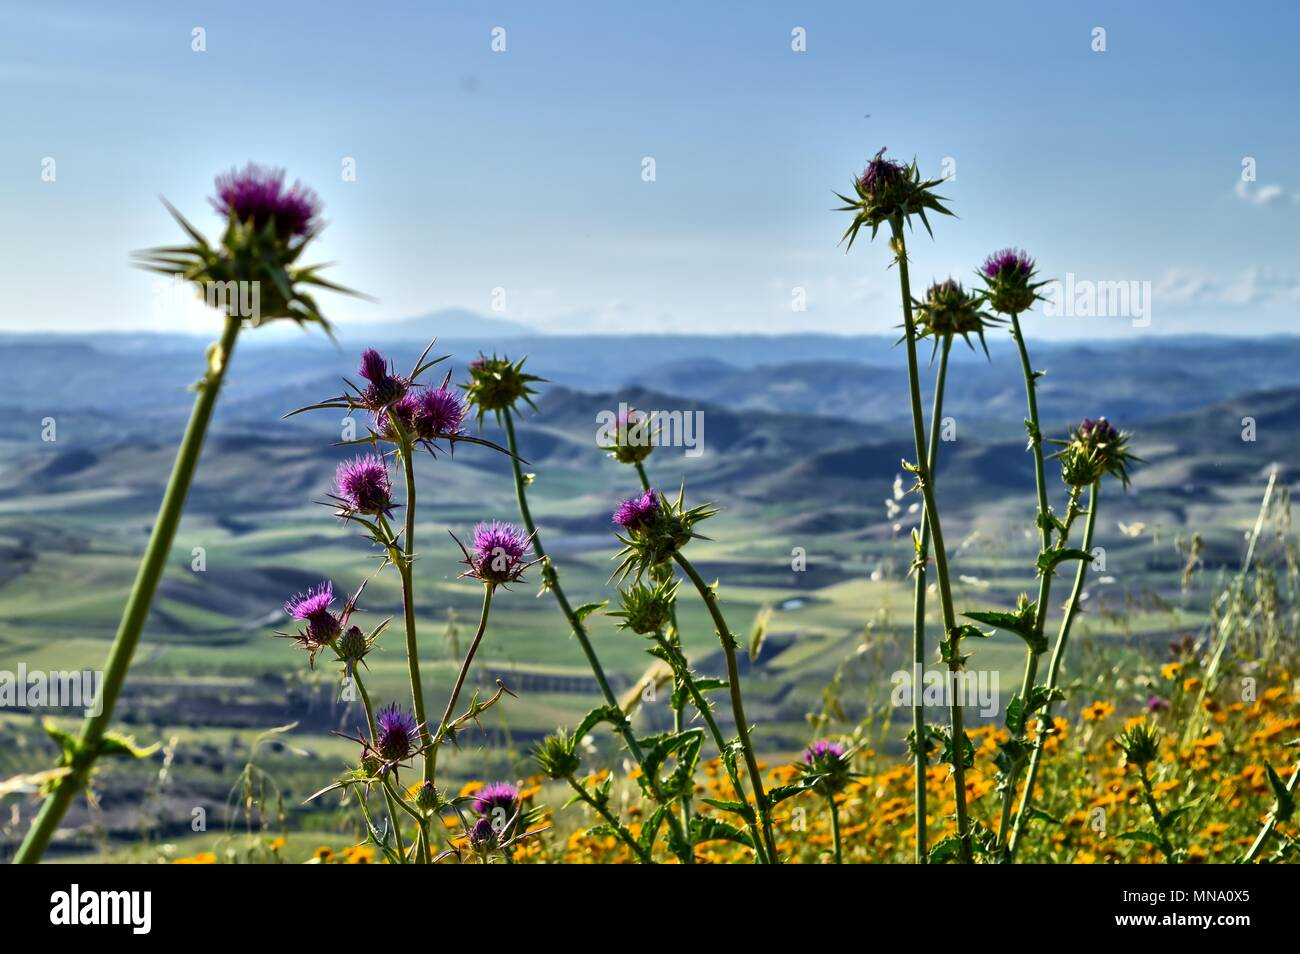 Close-up of Wild Thistles in Bloom Typical of the Macchia Mediterranea, Sicilian Landscape, Italy, Europe - Stock Image